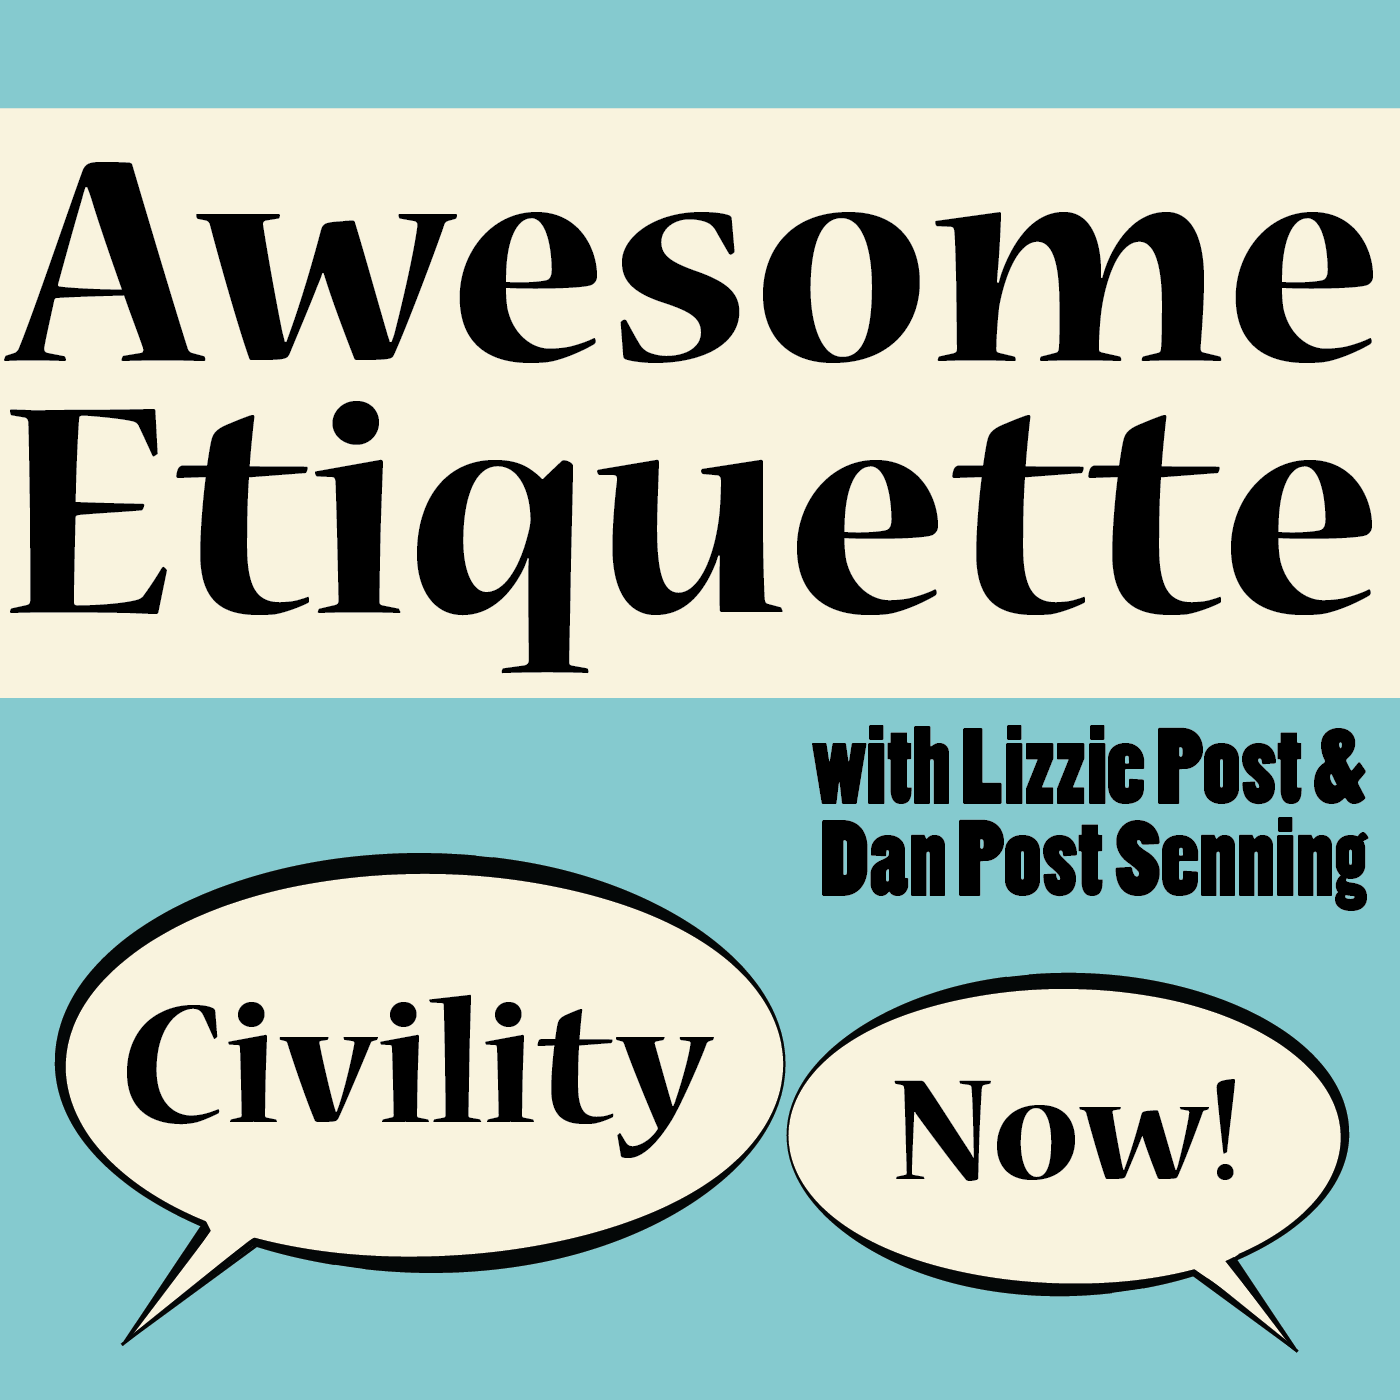 awesome-etiquette-logo-20170124-1400x1400